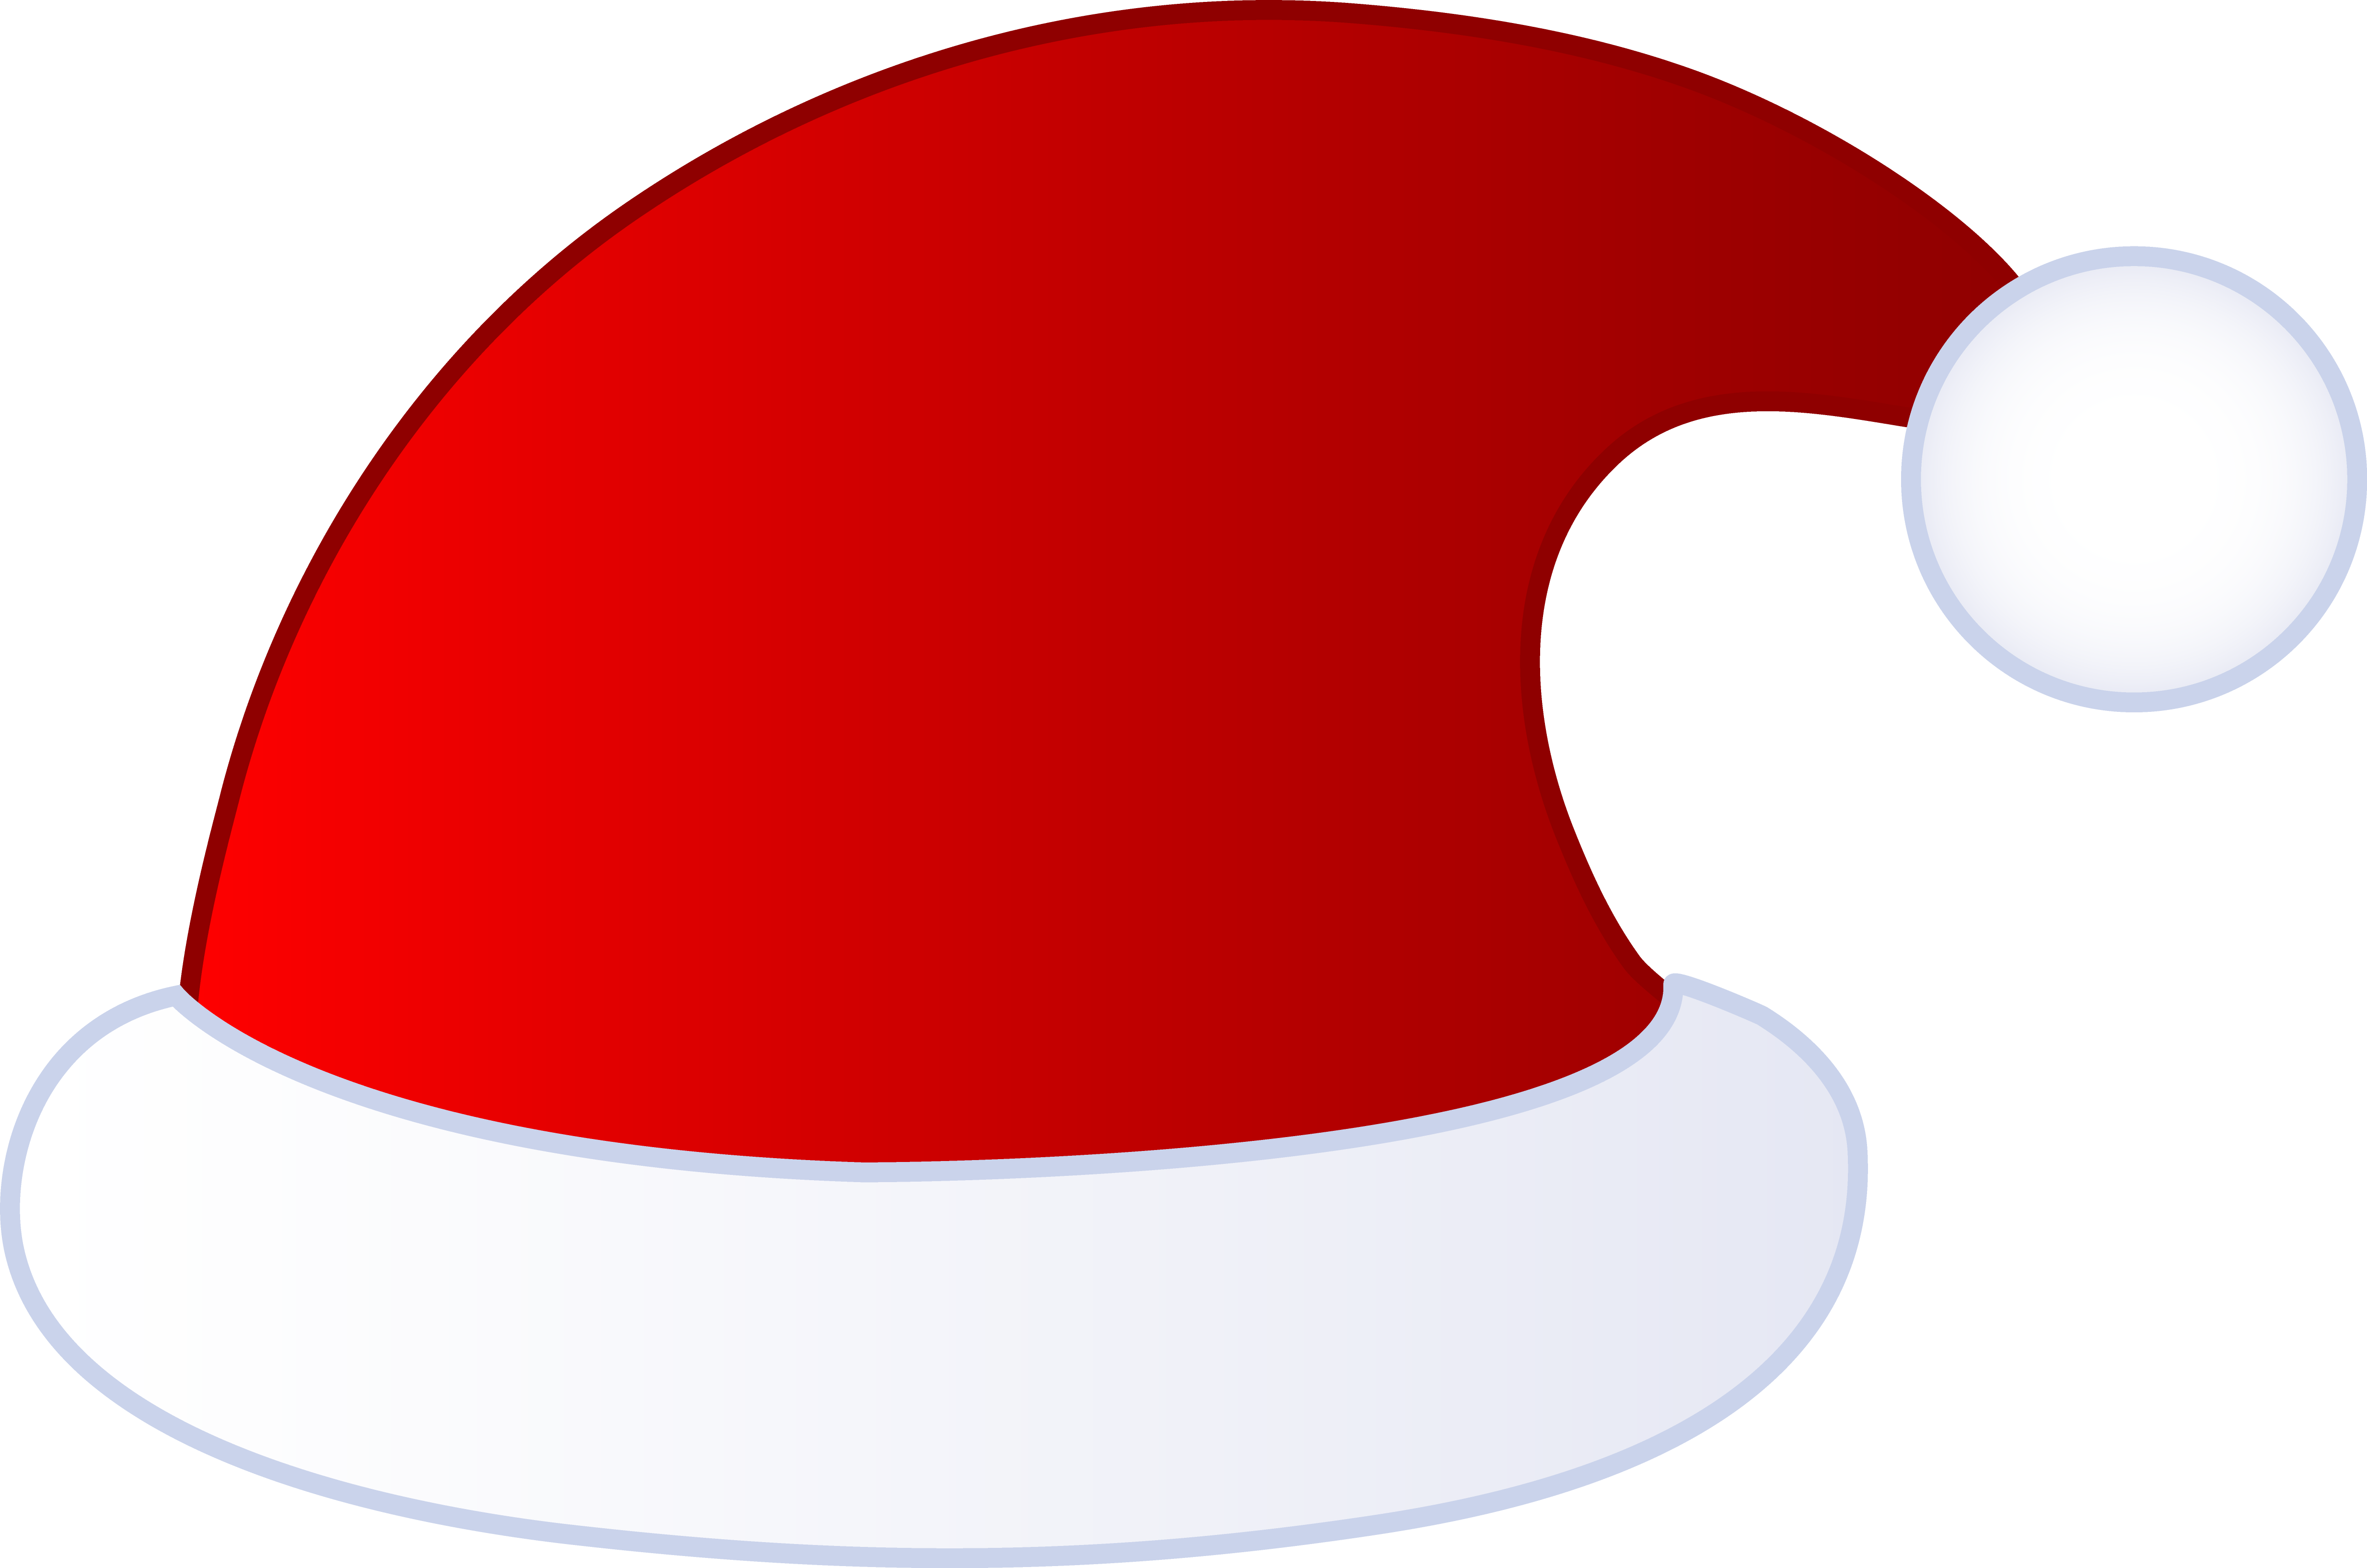 Christmas hats clipart clipart black and white library Free Christmas Hats Clipart, Download Free Clip Art, Free Clip Art ... clipart black and white library